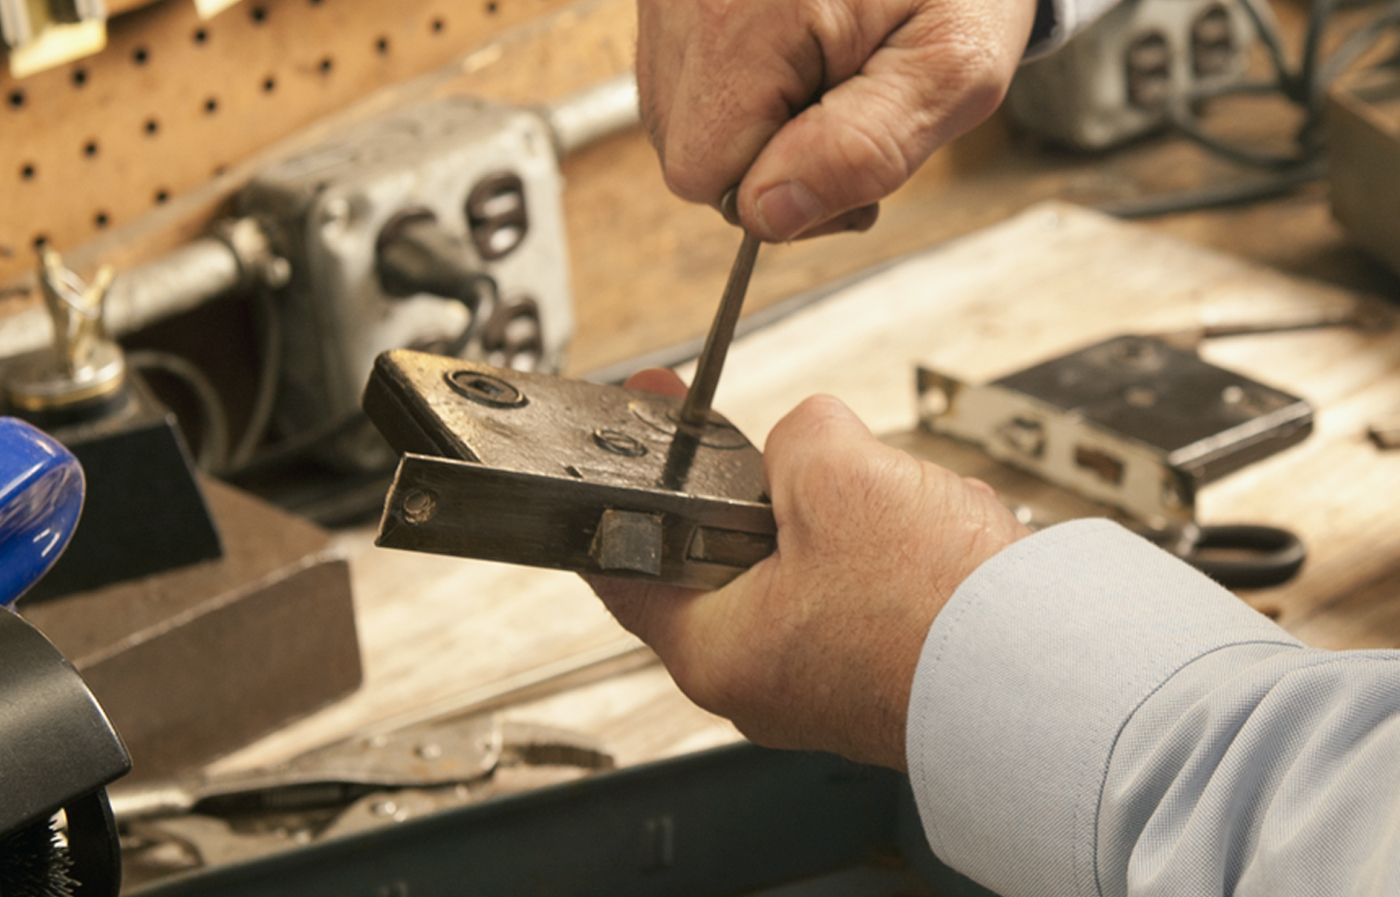 How to Make a New Key for an Old Mortise Lock Mortise